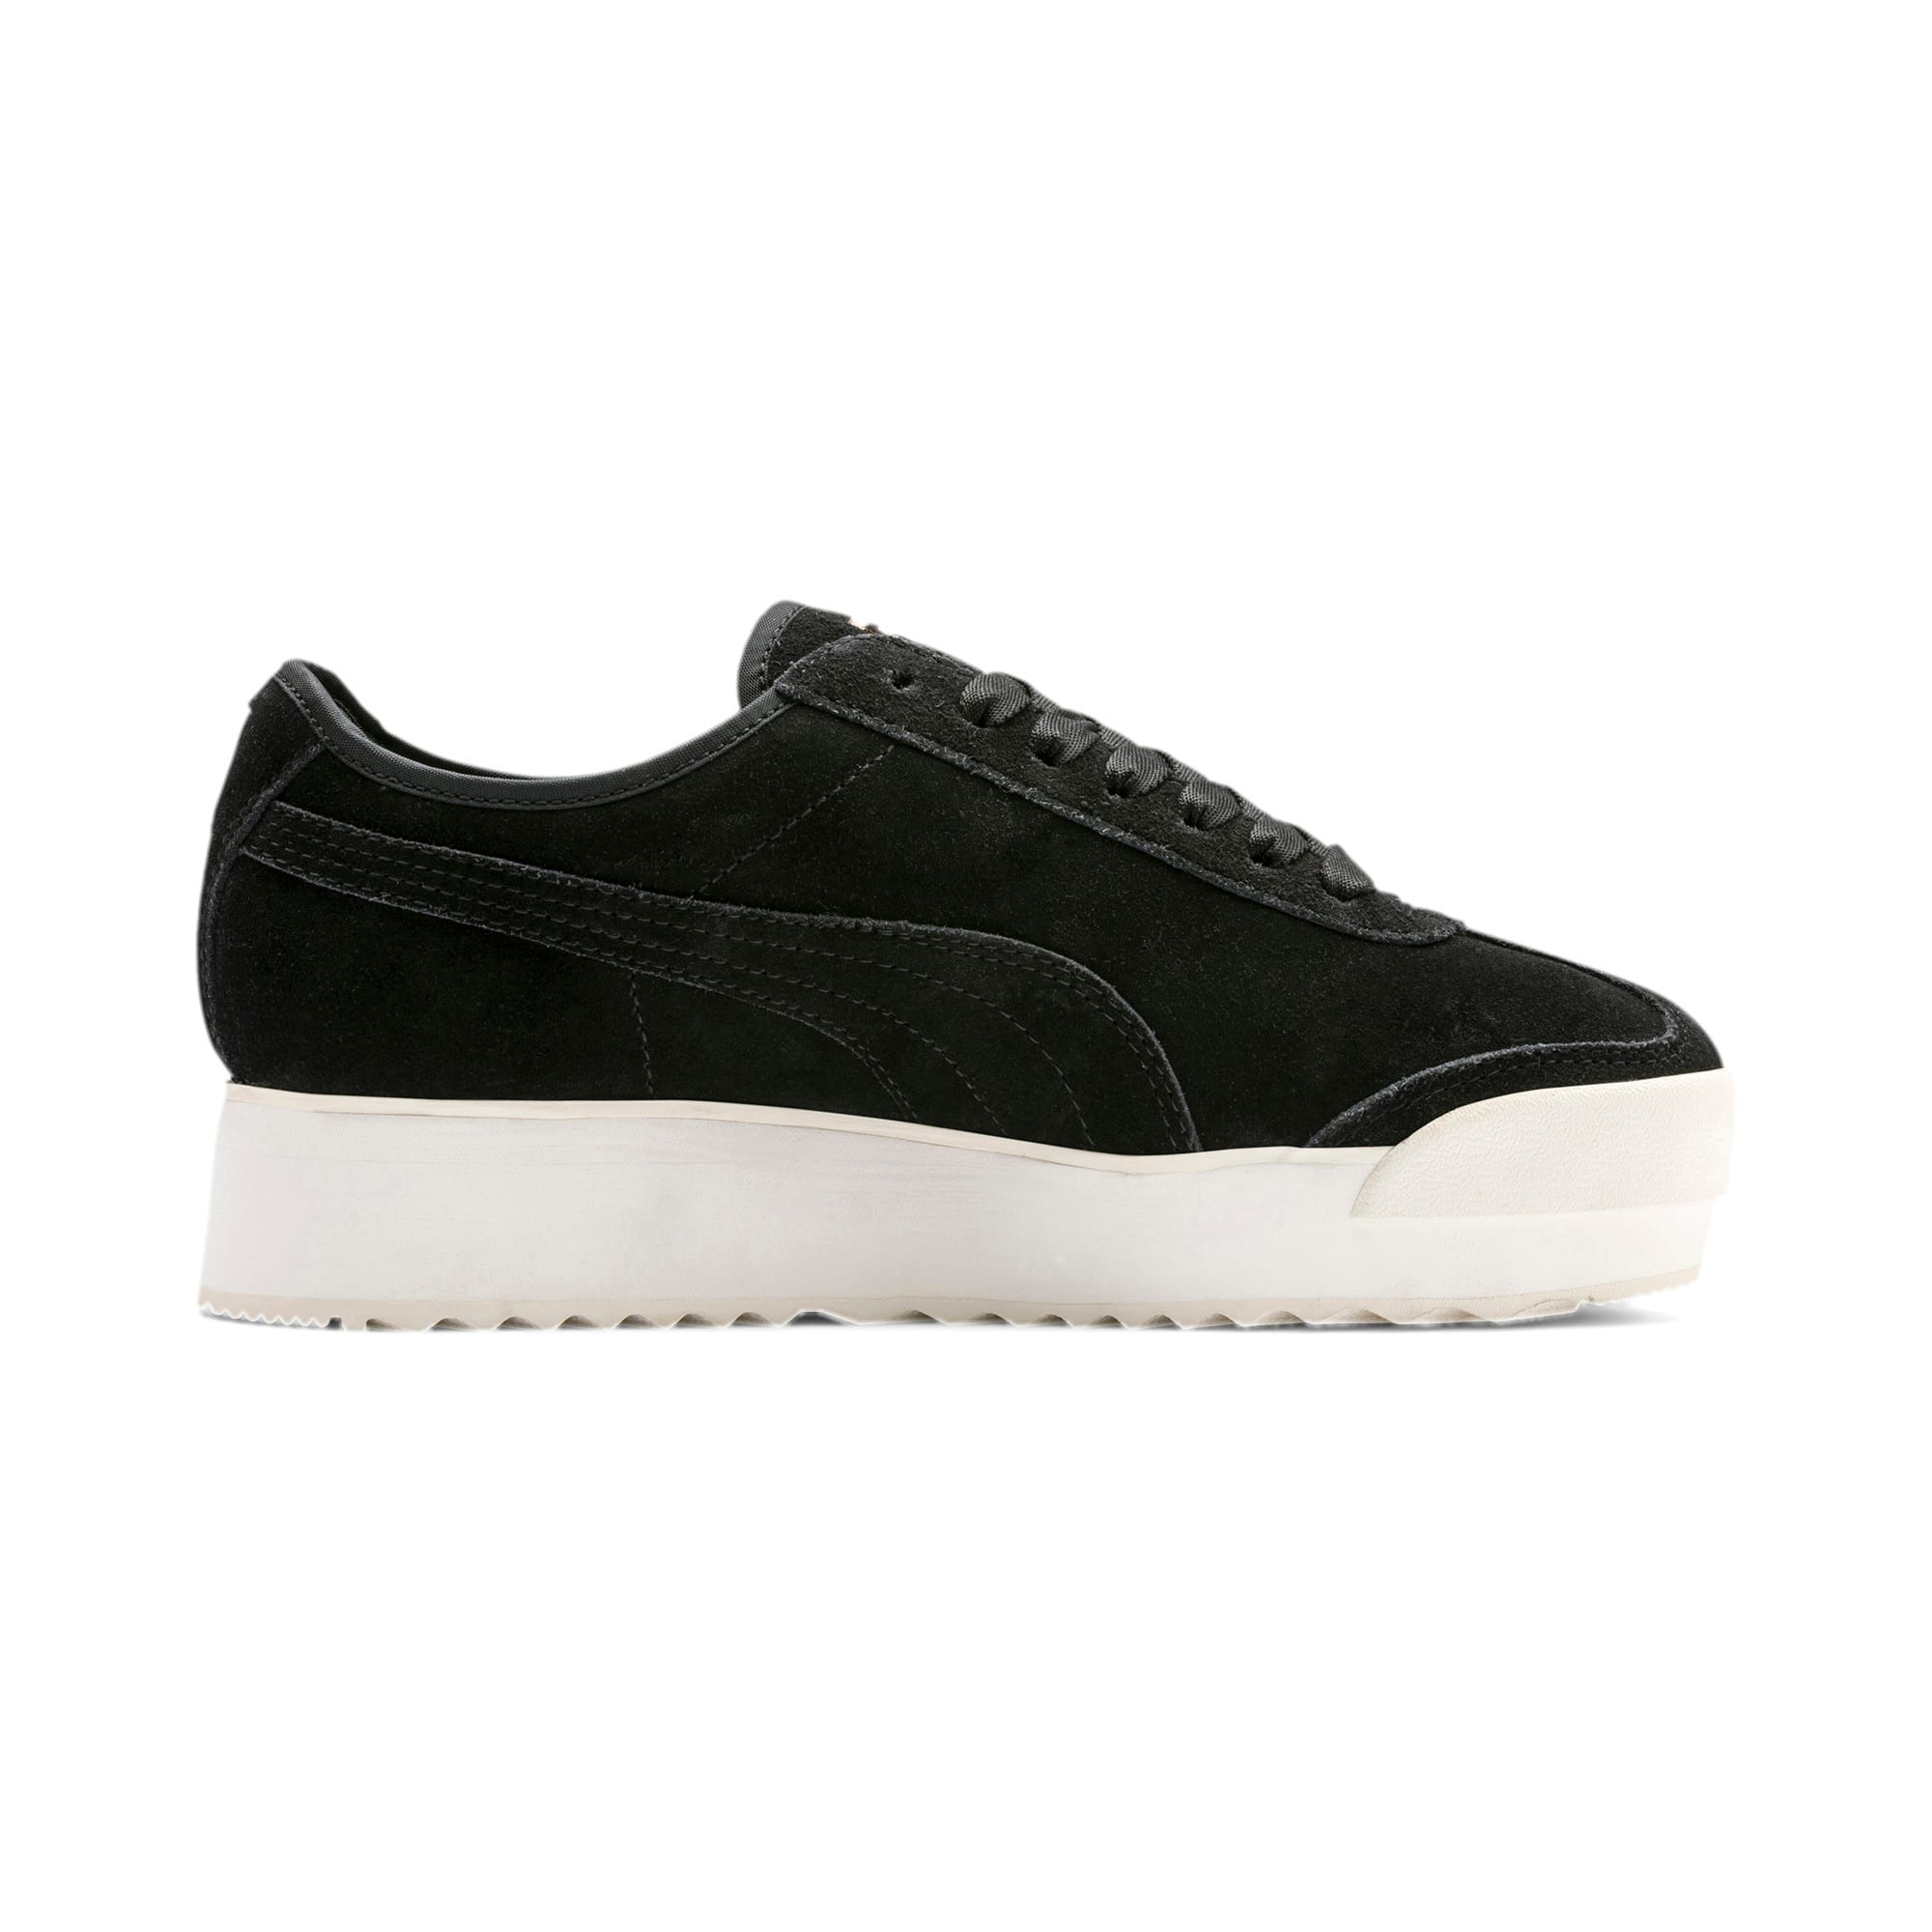 Thumbnail 6 of Roma Amor Suede Women's Trainers, Puma Black-Puma Team Gold, medium